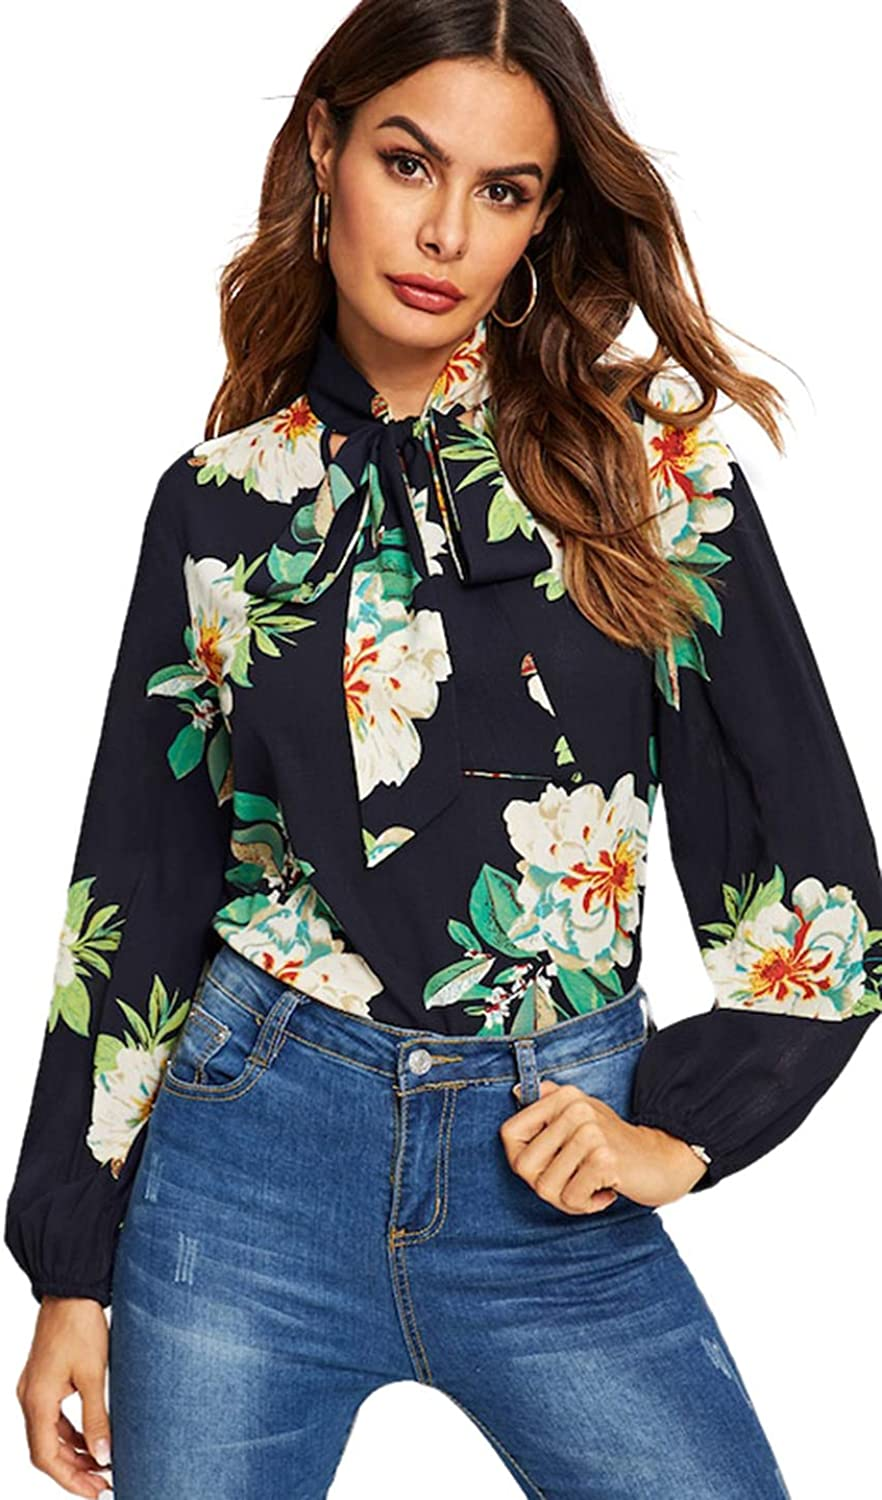 Romwe Women's Long Sleeve Floral Print Tie Neck Casual Blouse Top